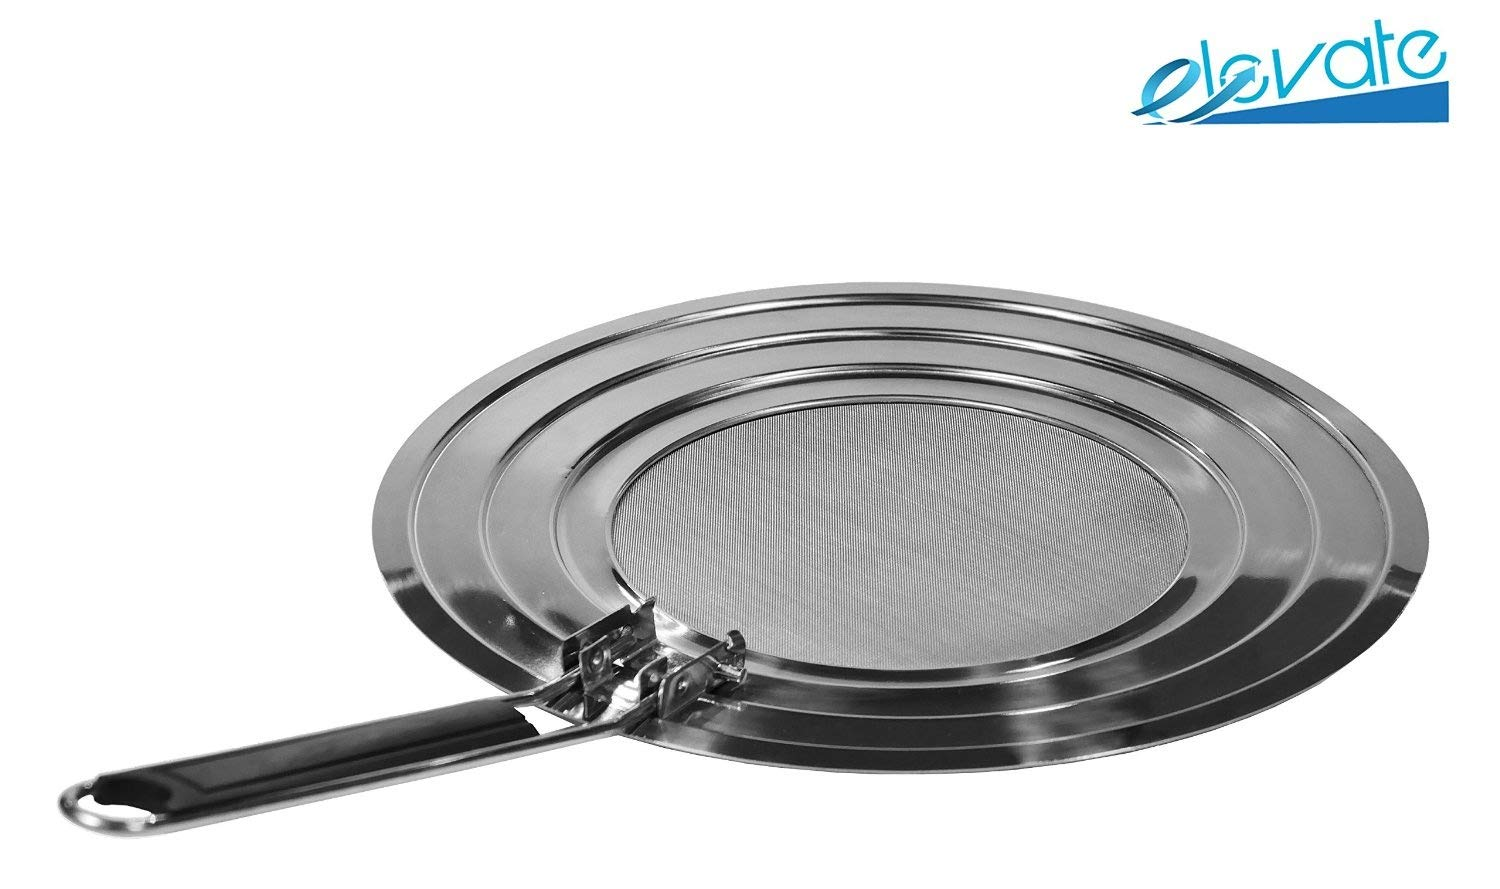 Splatter Screen Grease Splatter Guard with Heavy-Duty Folding Handle - Stainless Steel Screen Cover - Fits Most Frying Pans & Other Cooking Pots & Pans - Stronger Handle Than Other Pan Covers